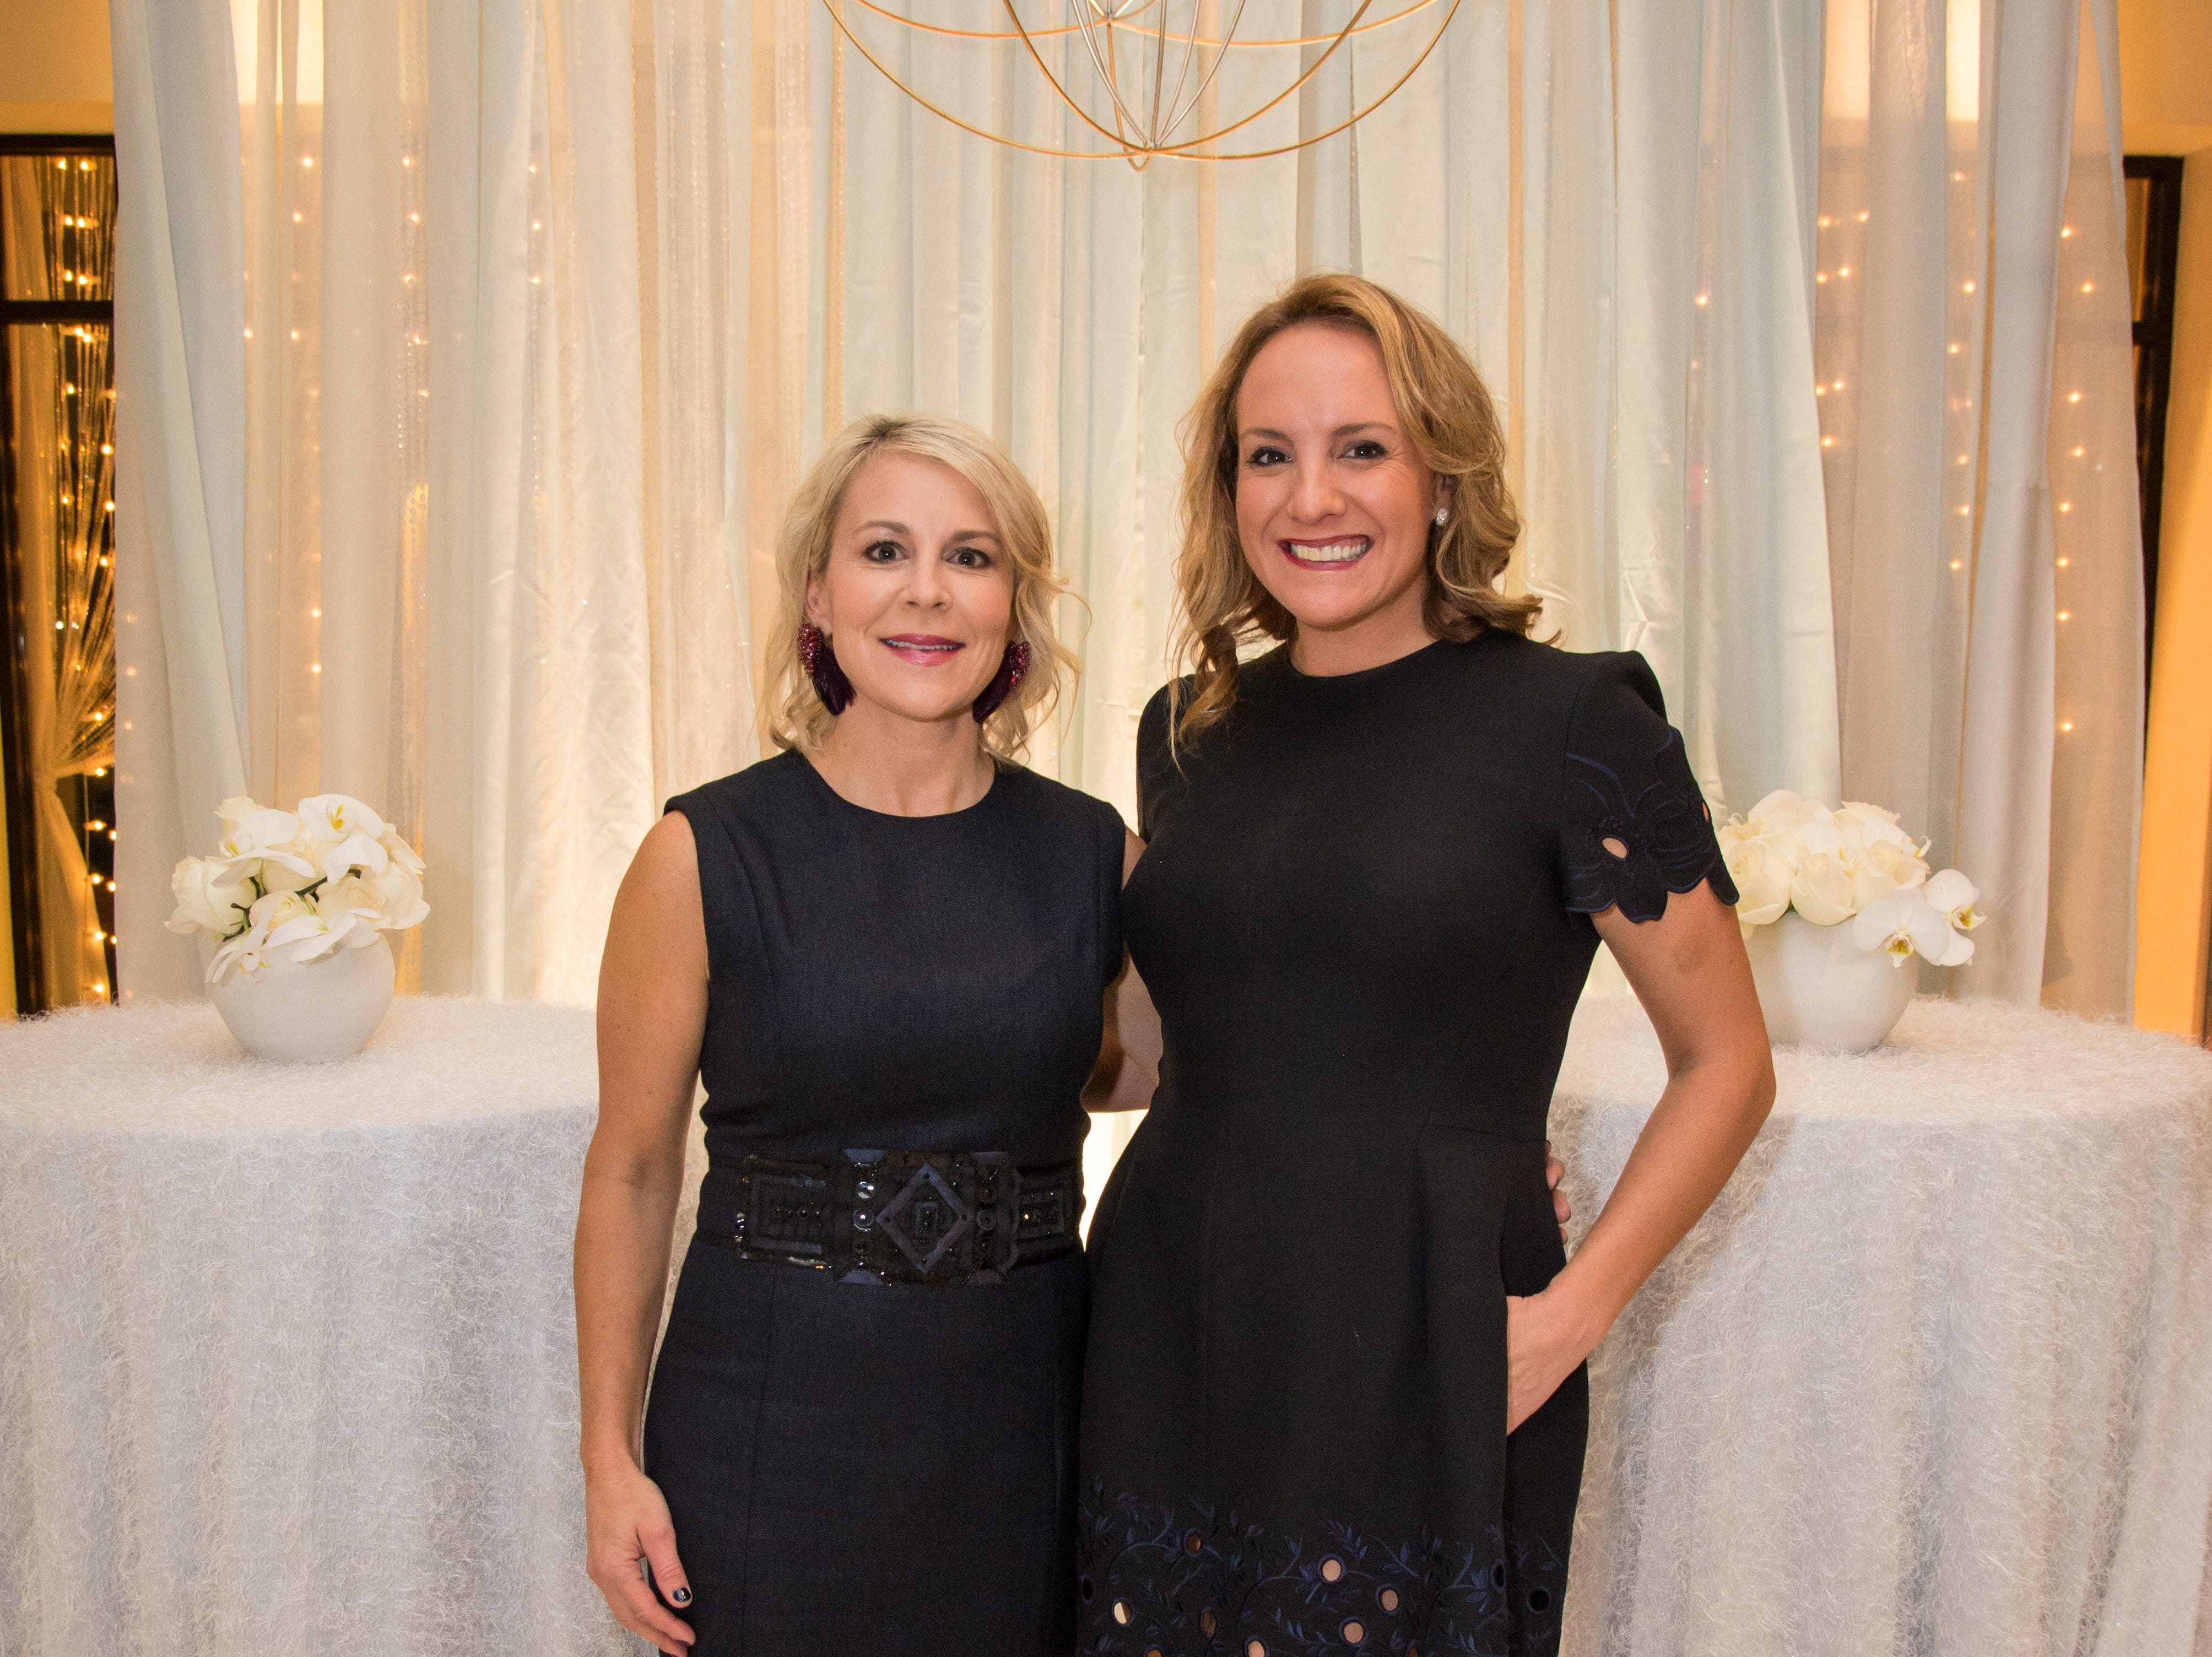 Allison Schaufele, left, and Cynthia Arnholt, 2019 Symphony Fashion Show chairmen